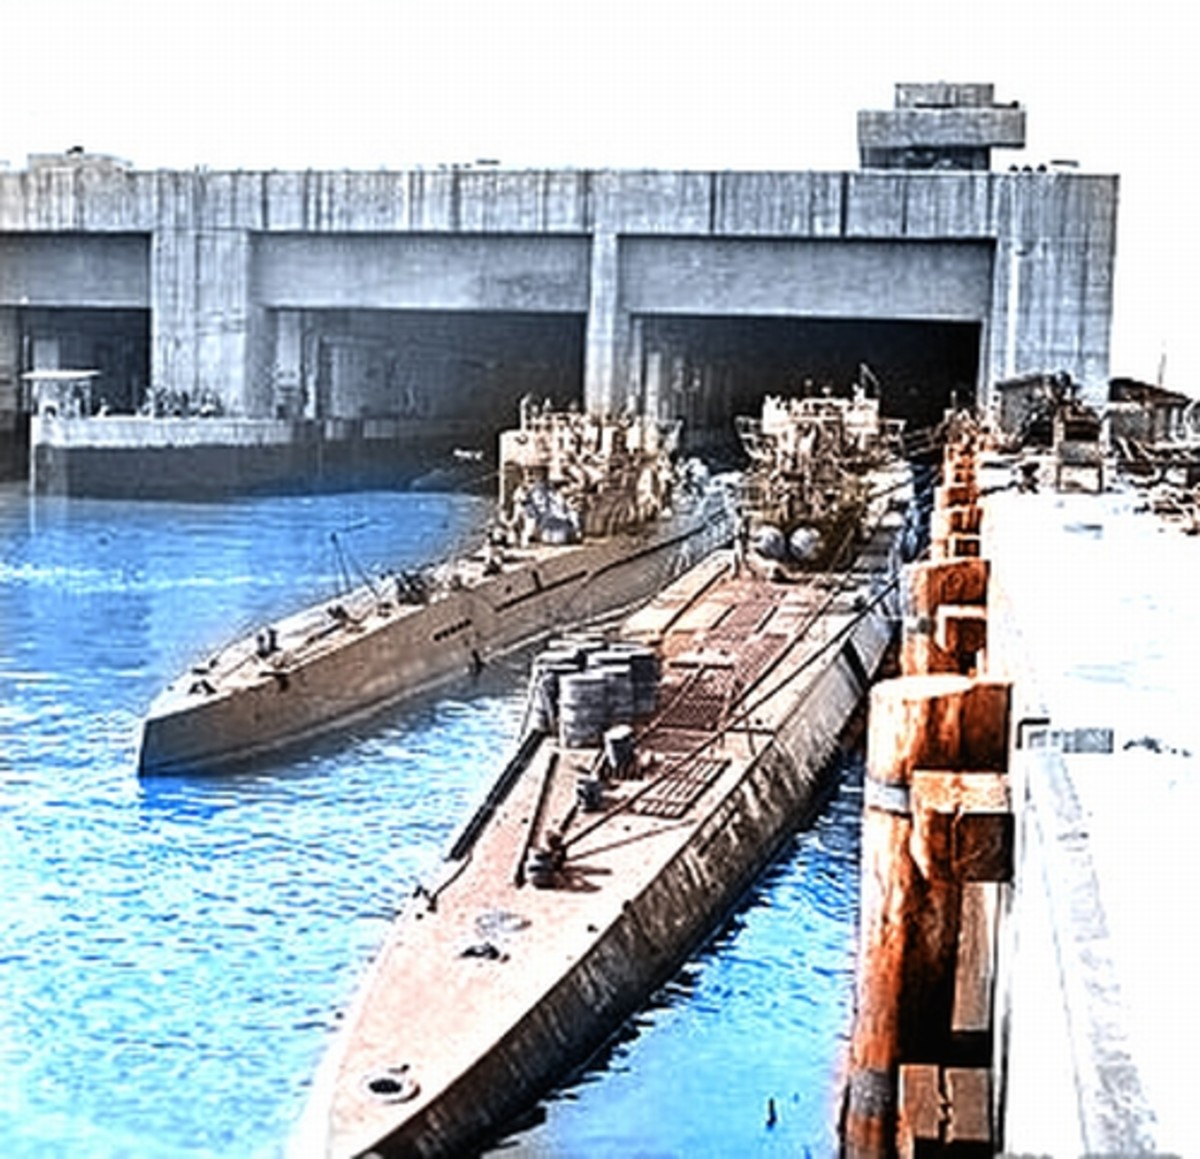 World War II: A smaller Type VII U-Boat (left) next to a large Type IX U-Boat in the submarine pens at Trondheim, Norway after the war.